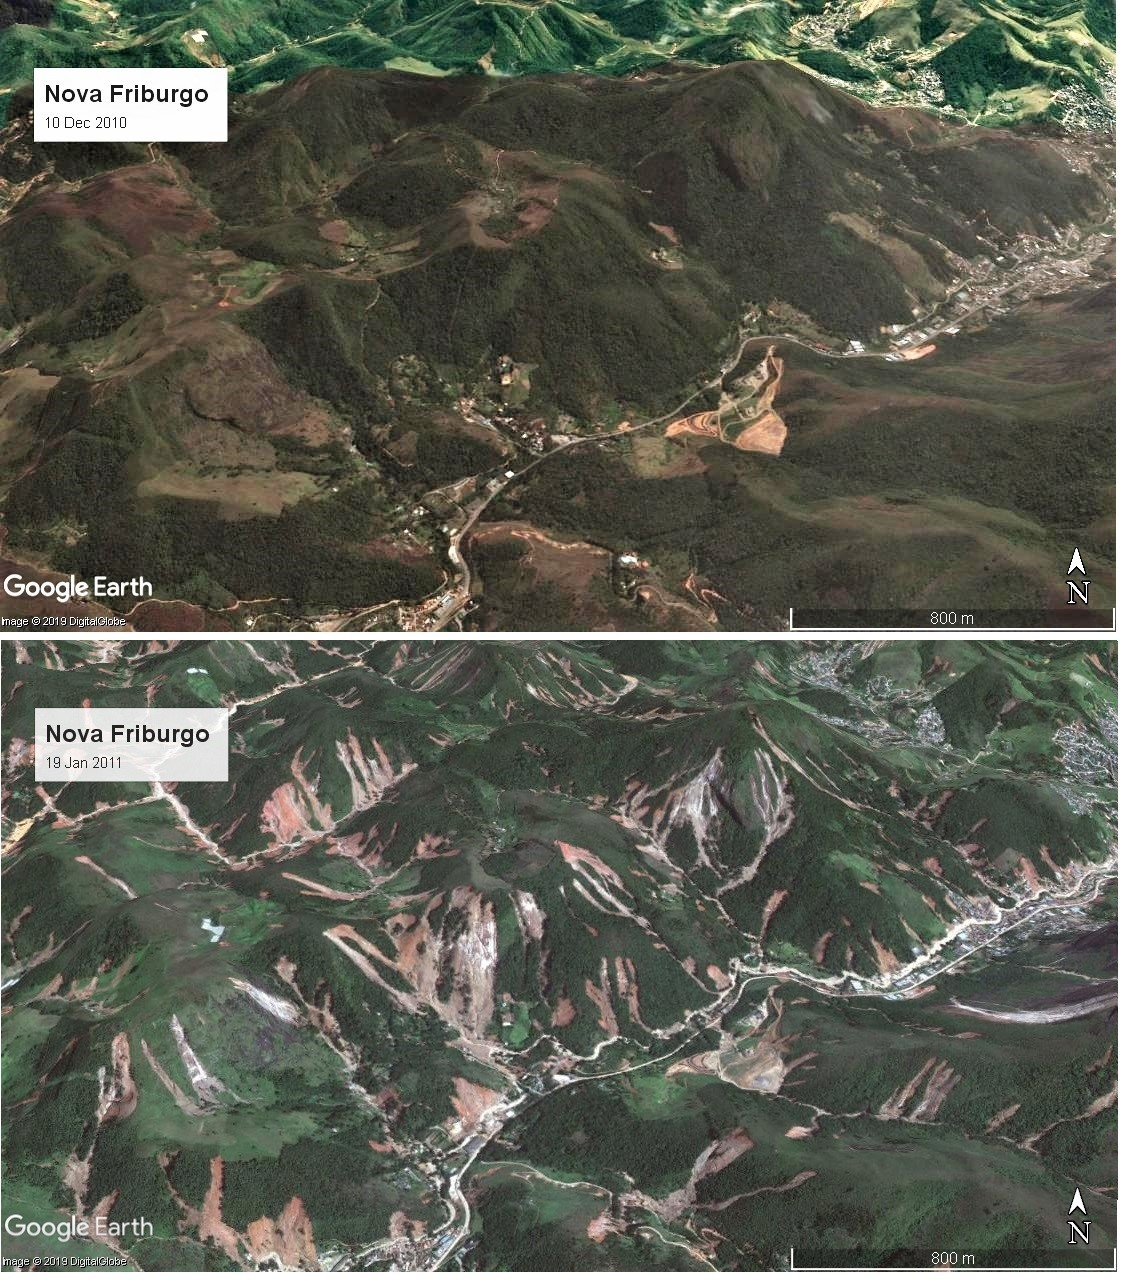 Satellite imagery of the 2011 mudslides in Nova Friburgo - before and after. Via Google Earth, collected in 2019.